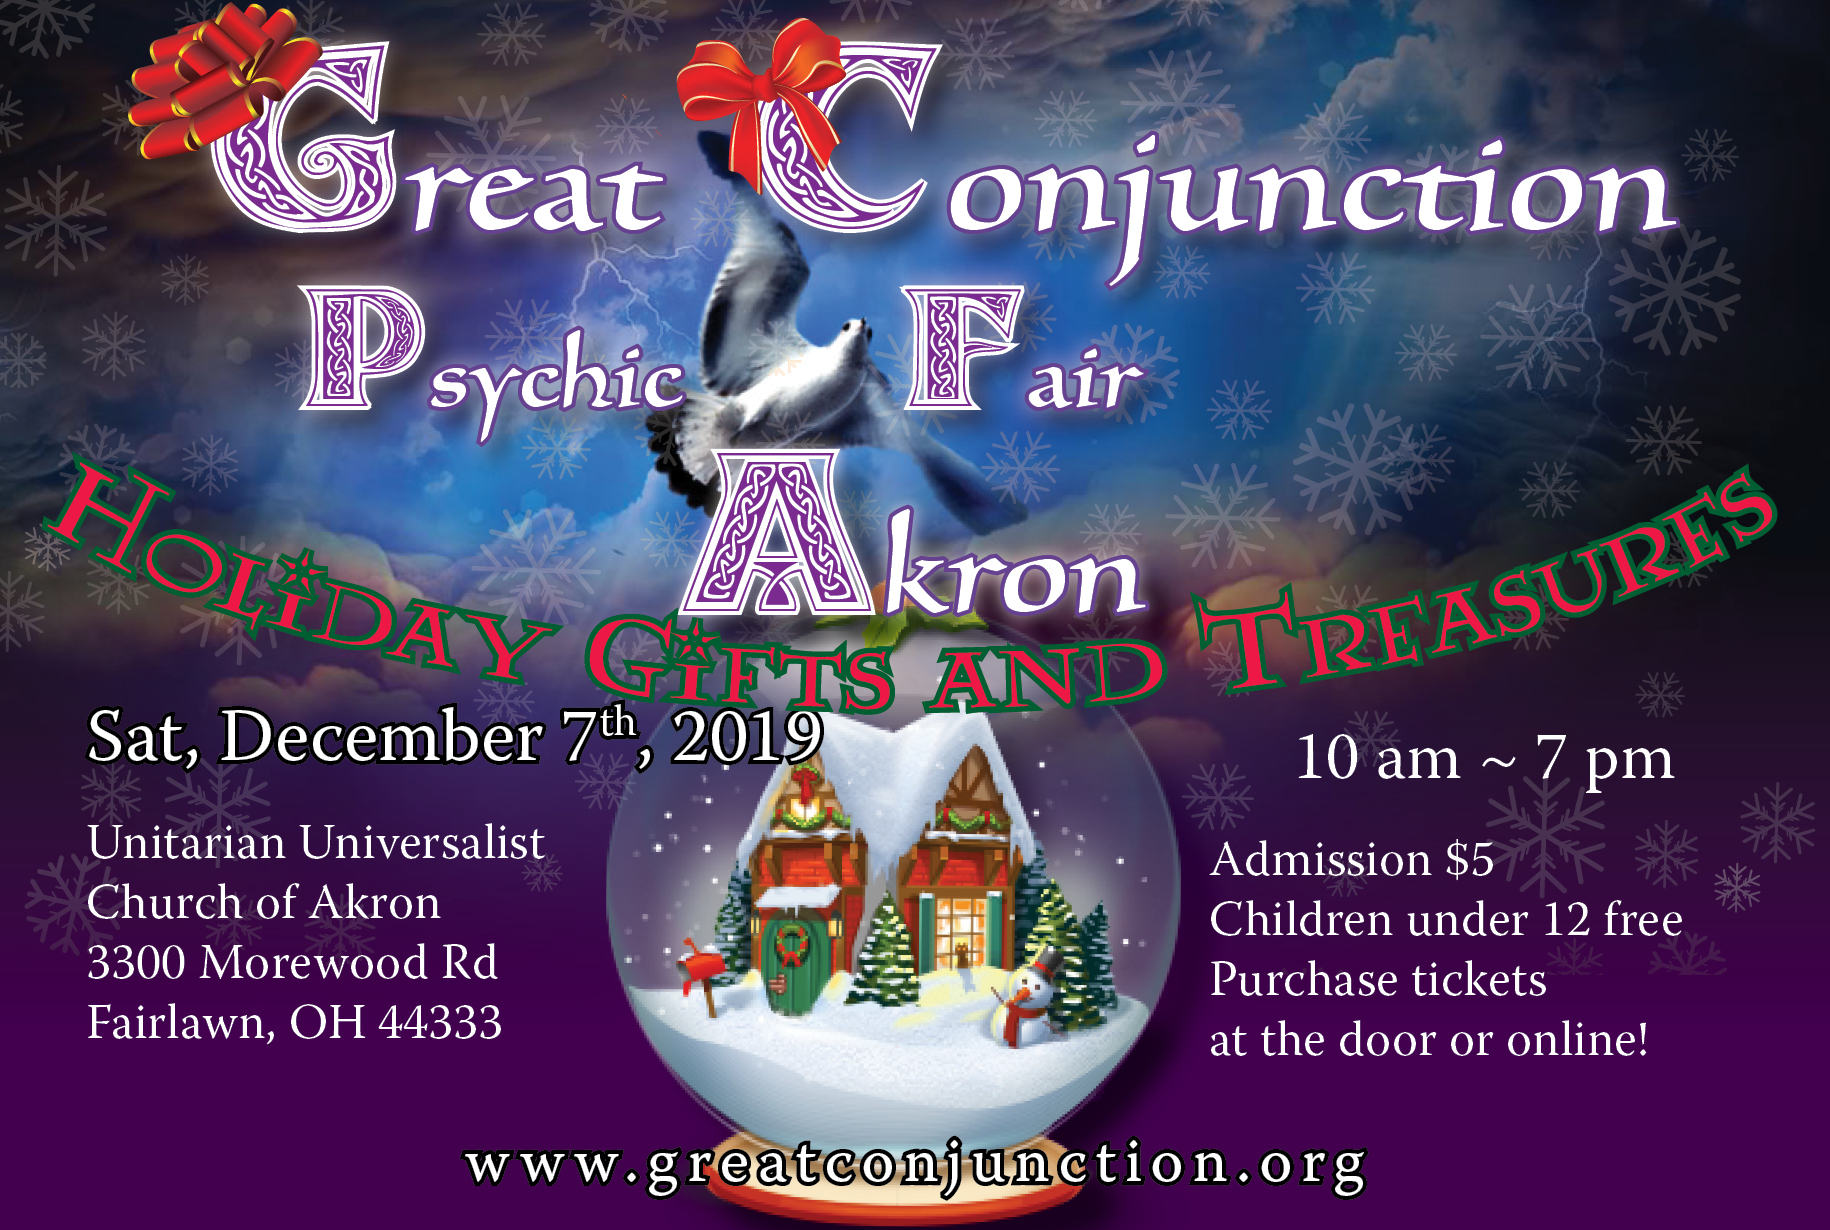 Great Conjunction Holiday Gifts & Treasures Psychic Fair